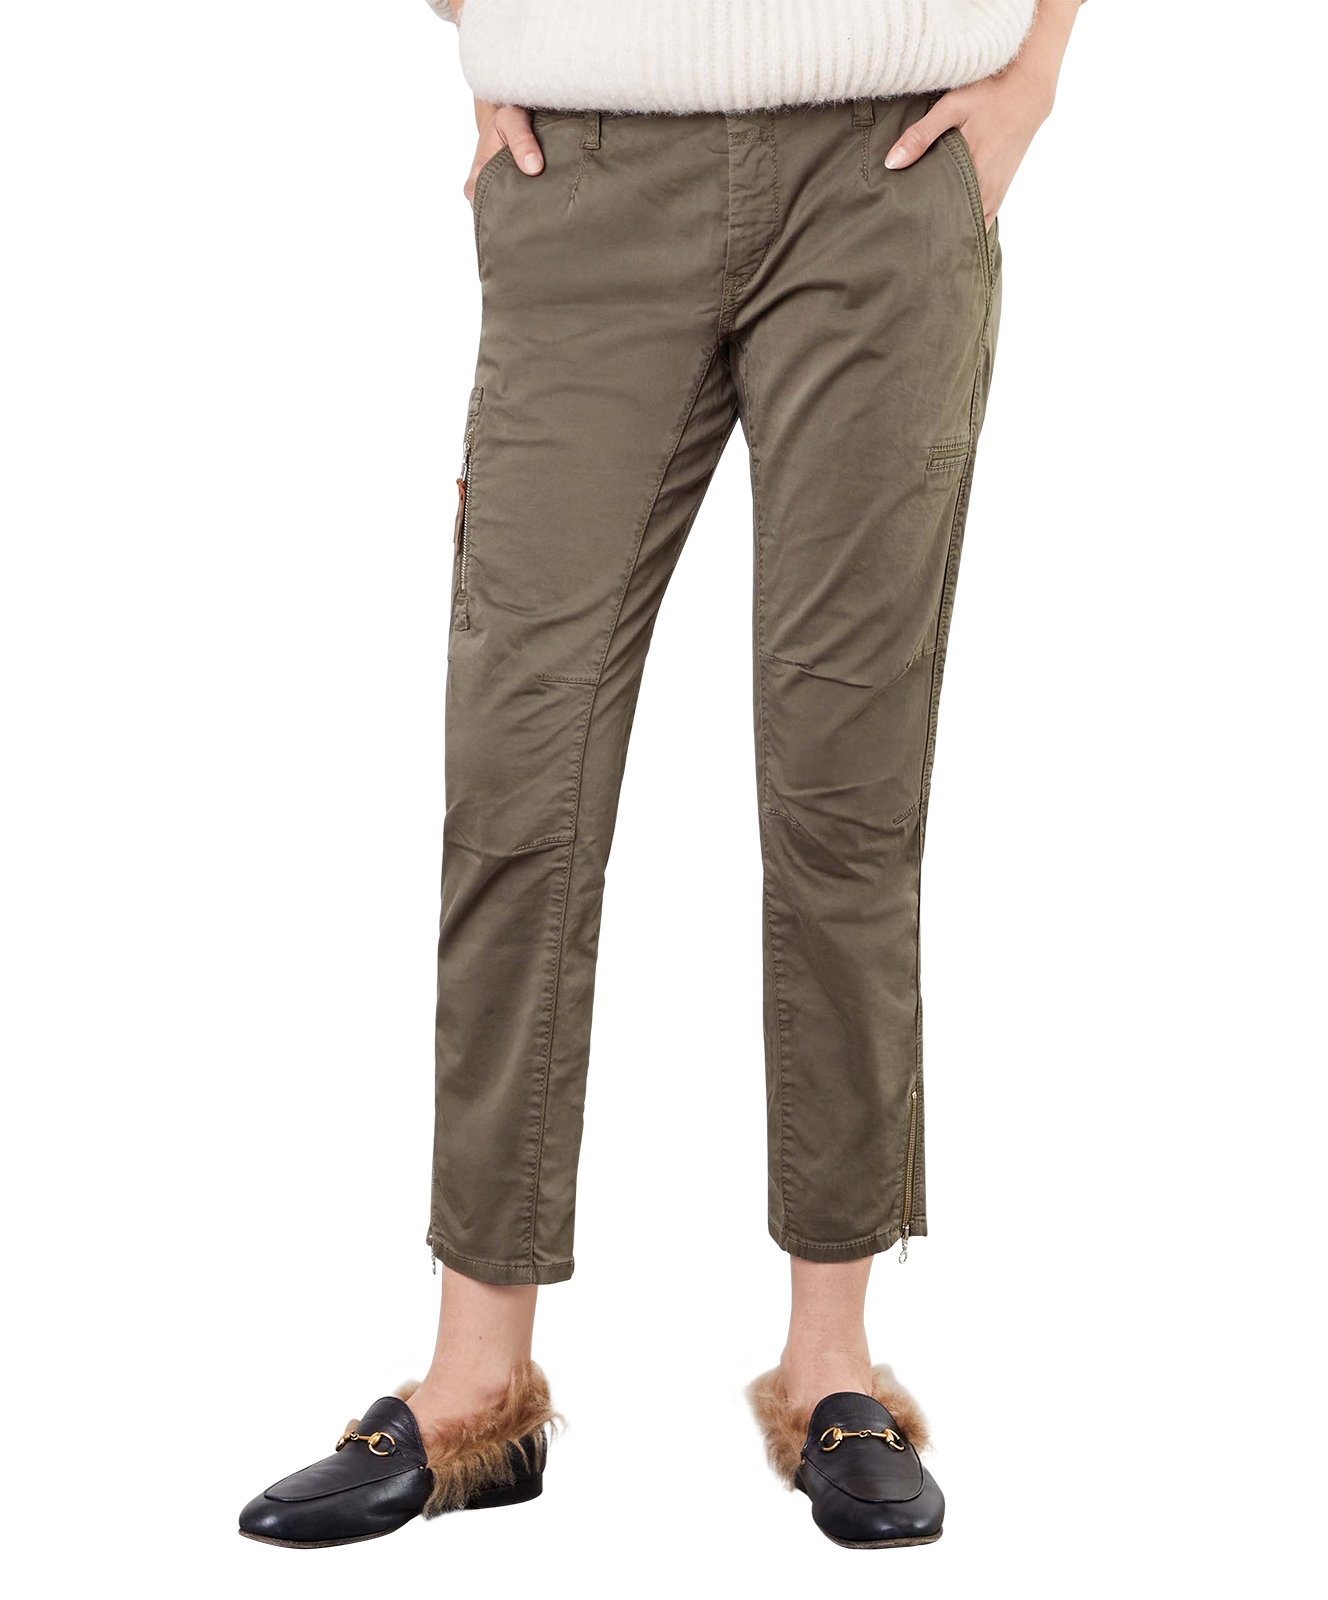 Hosen - Mac Hose Rich Cargo Relaxed Slim Fit in dunklem Olive  - Onlineshop Jeans Meile